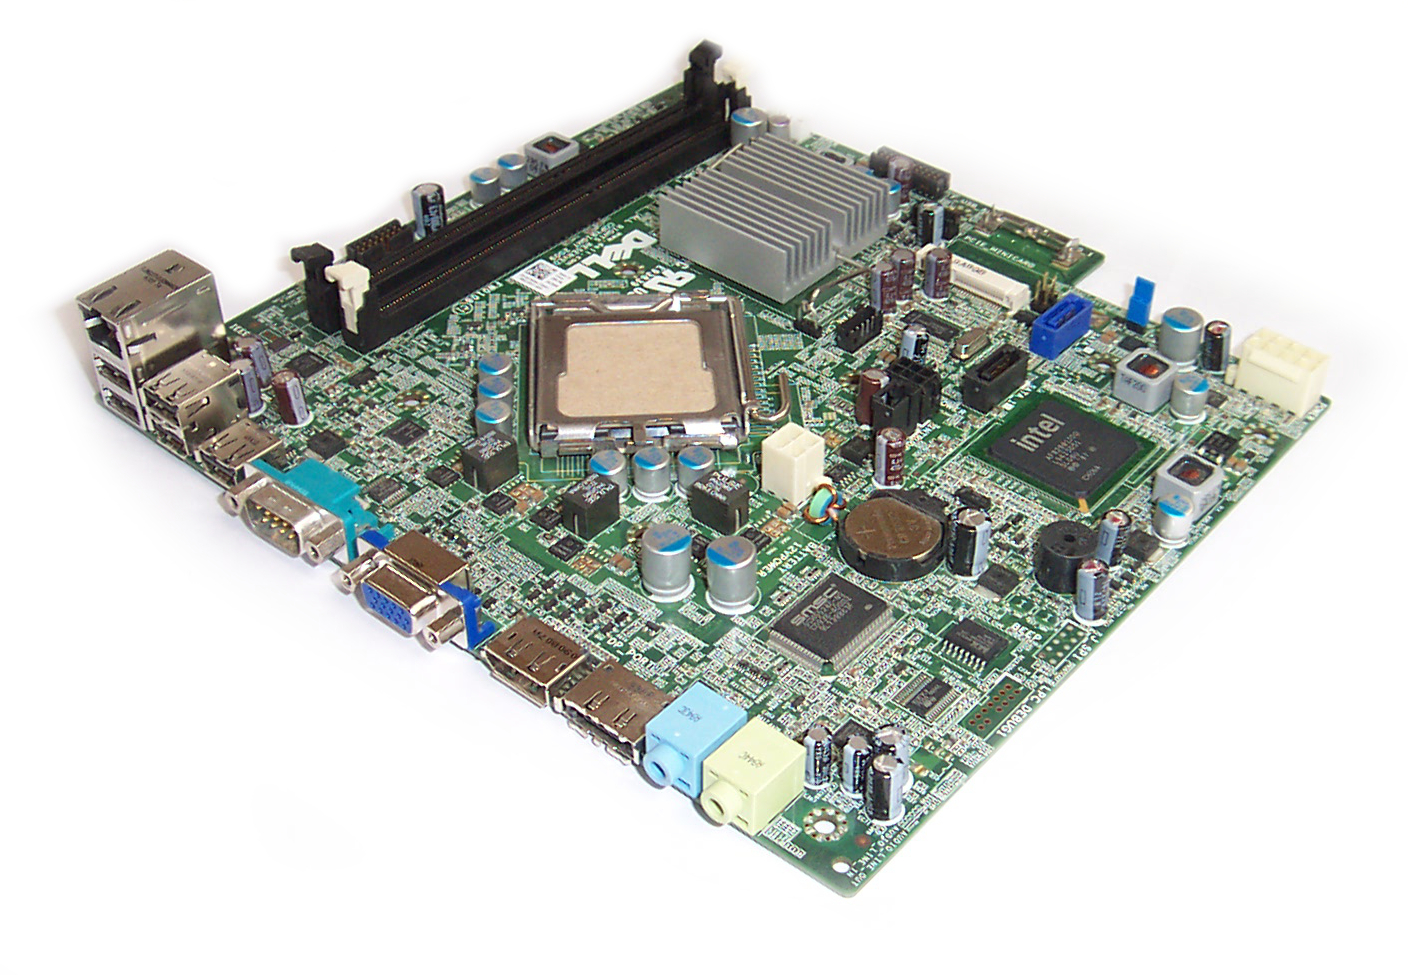 Dell G785M OptiPlex 780 USFF LGA775 Motherboard